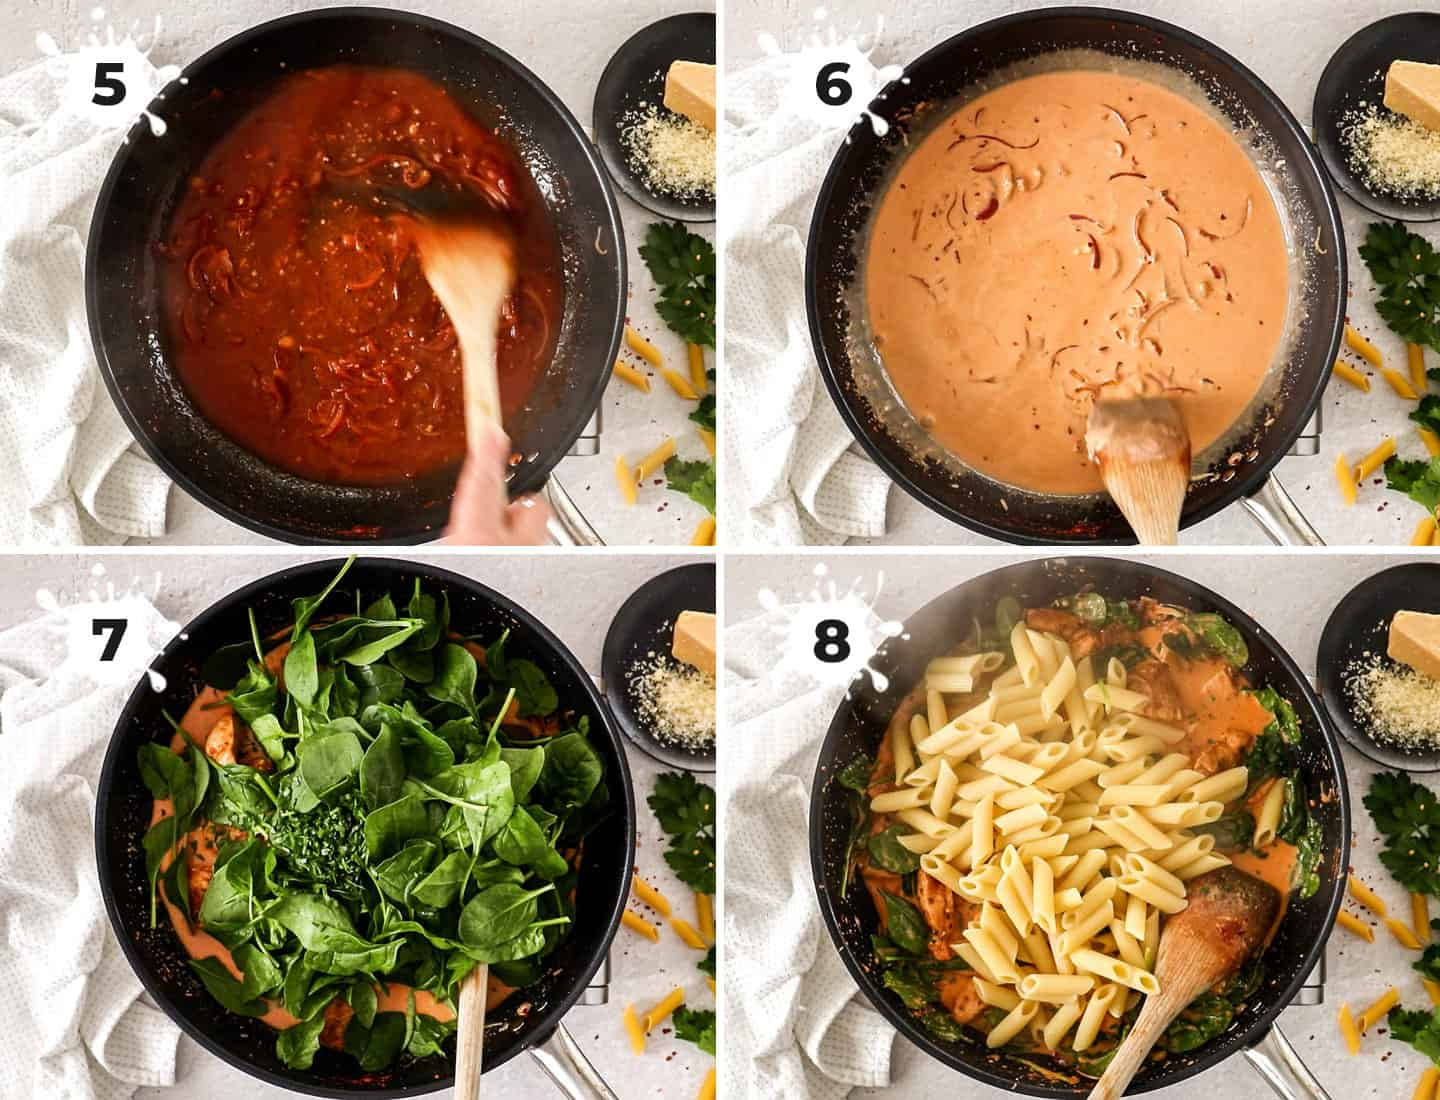 A collage of 4 images showing how to make the sauce for the chicken pasta.